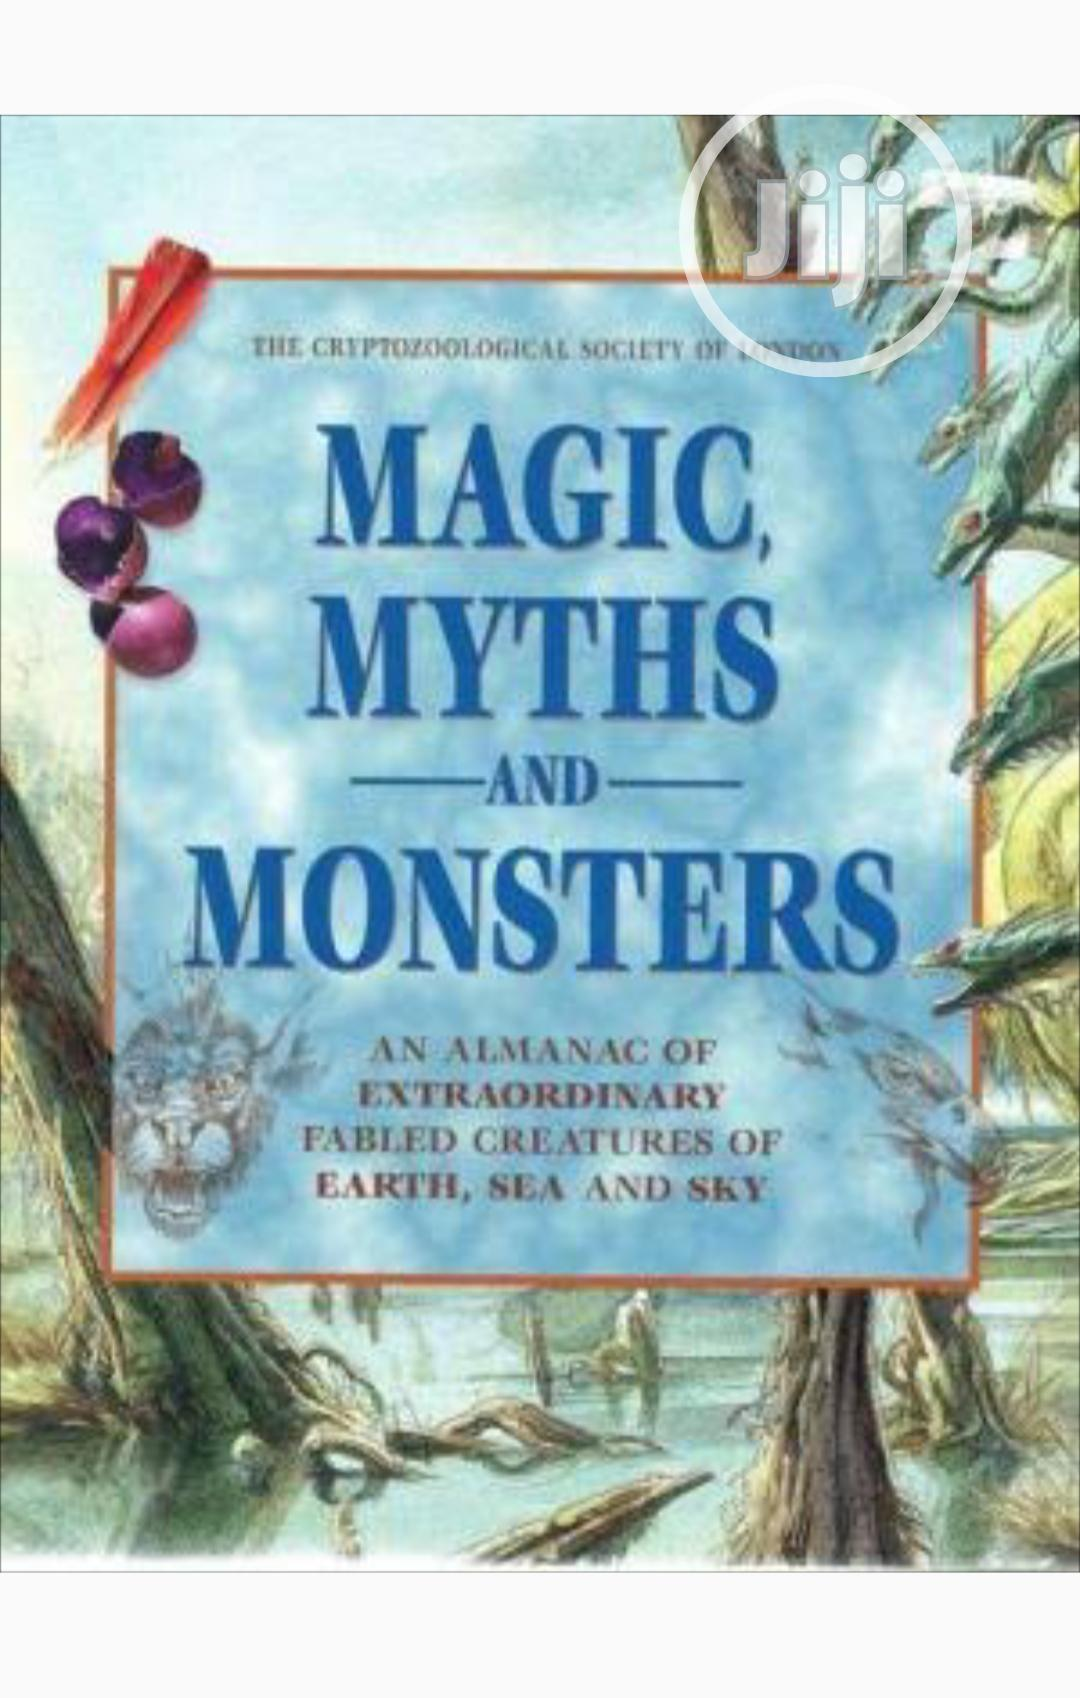 Magic Myths And Monsters By The Cryptozoological Society Of London